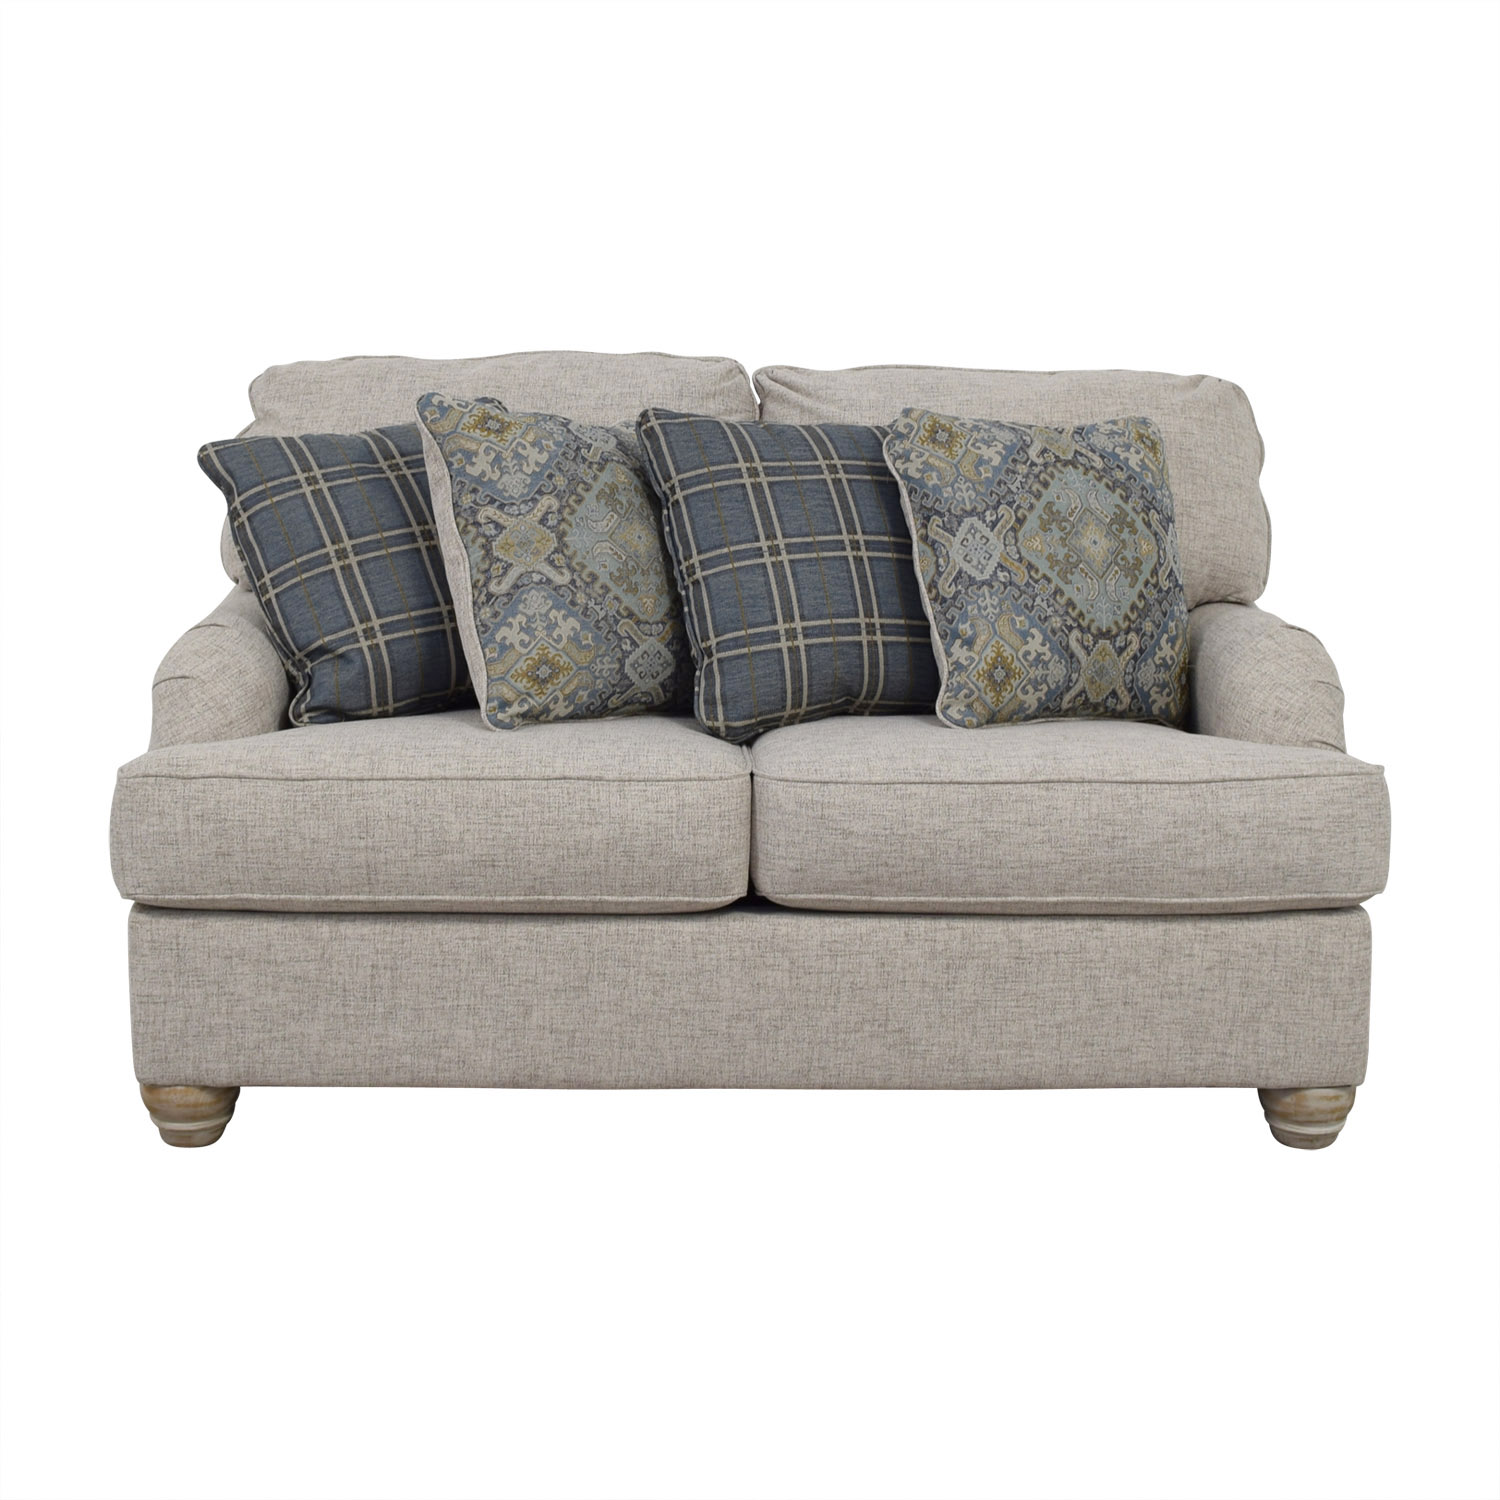 Buy Ashley Furniture Benchcraft Traemore Grey Loveseat Ashley Furniture ...